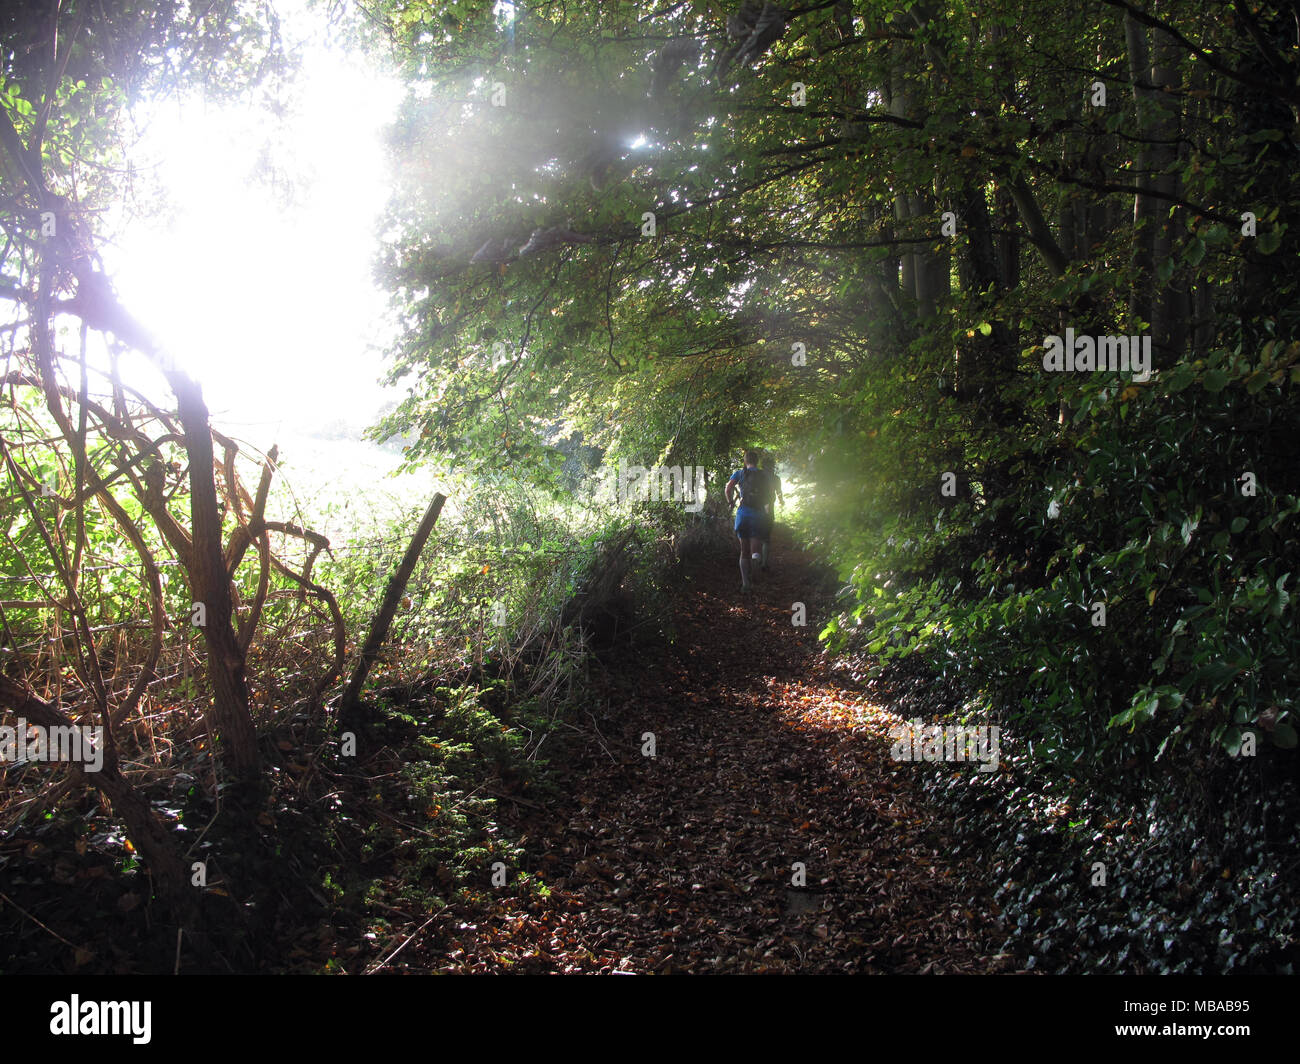 Two runners on the South Downs path jog up a leafy tree lined path on a sunny Autumn early morning. Stock Photo